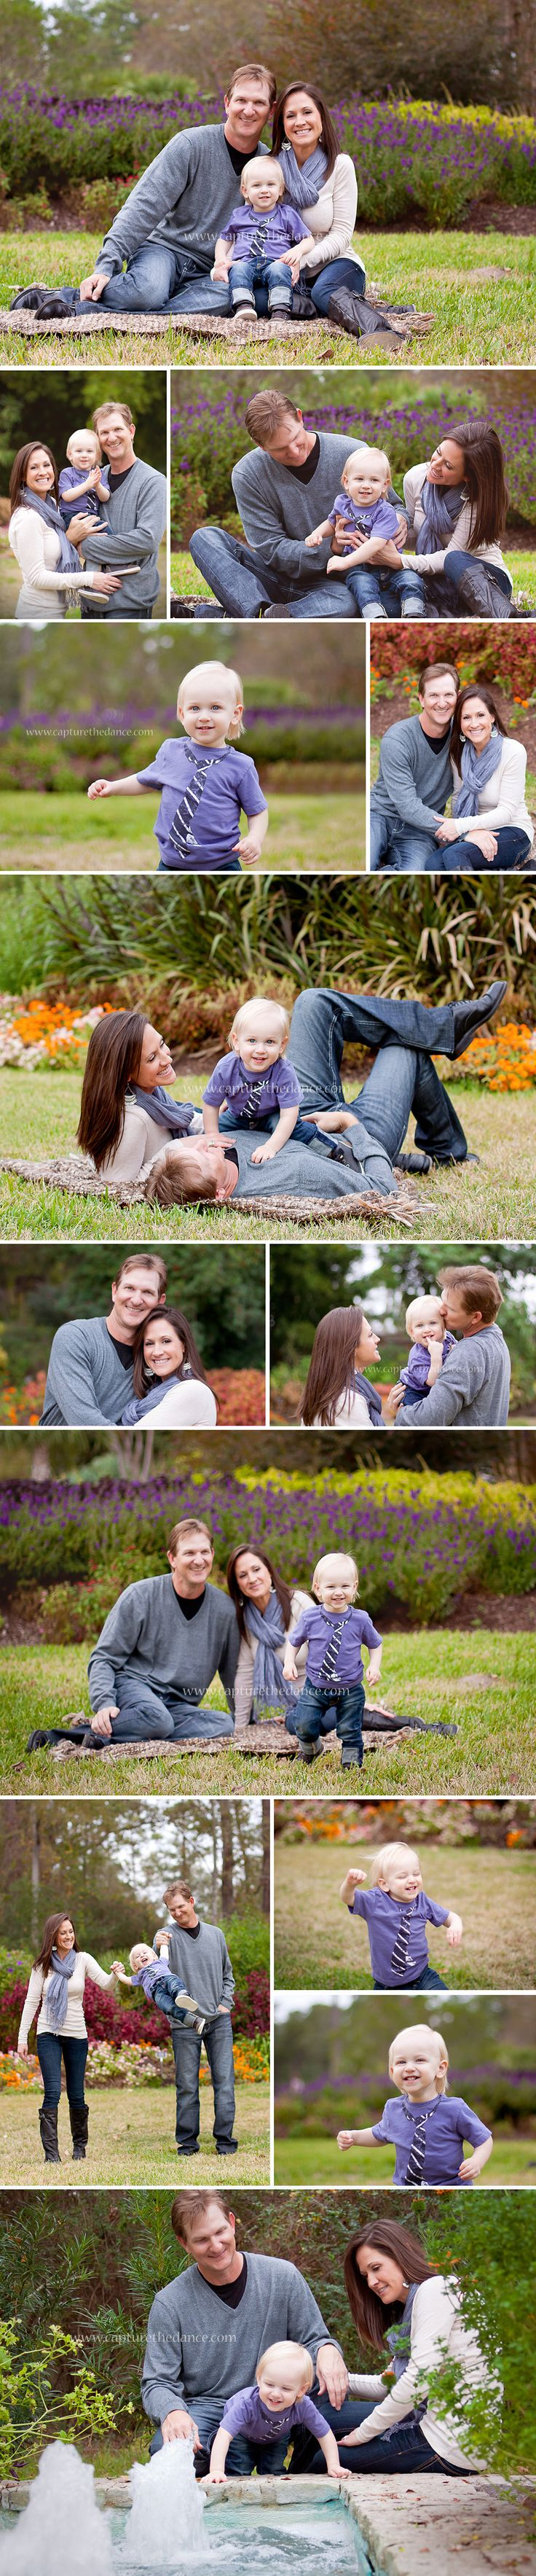 The Woodlands Family Portraits -  Capture the Dance Photography  Natural light outdoor family pictures, parents with their toddler boy